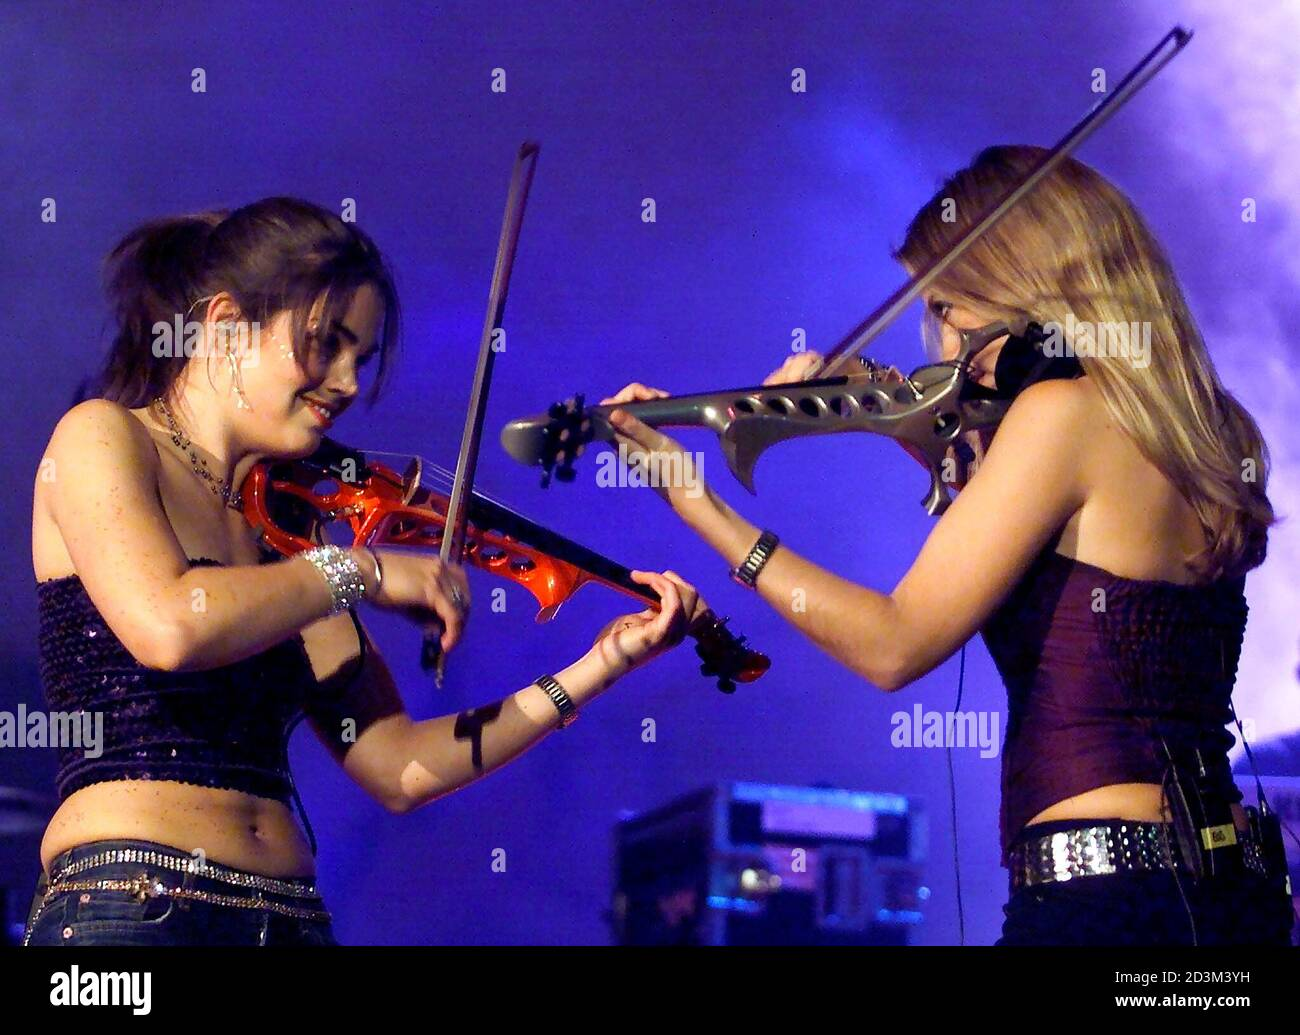 Haylie Ecker High Resolution Stock Photography And Images Alamy Online dictionaries and encyclopedias with entries for sofia ecker. https www alamy com haylie ecker l and eos r from british violin quartet bond perform during their concert in sofia late november 3 2001 reutersoleg popov reuters op image380914229 html